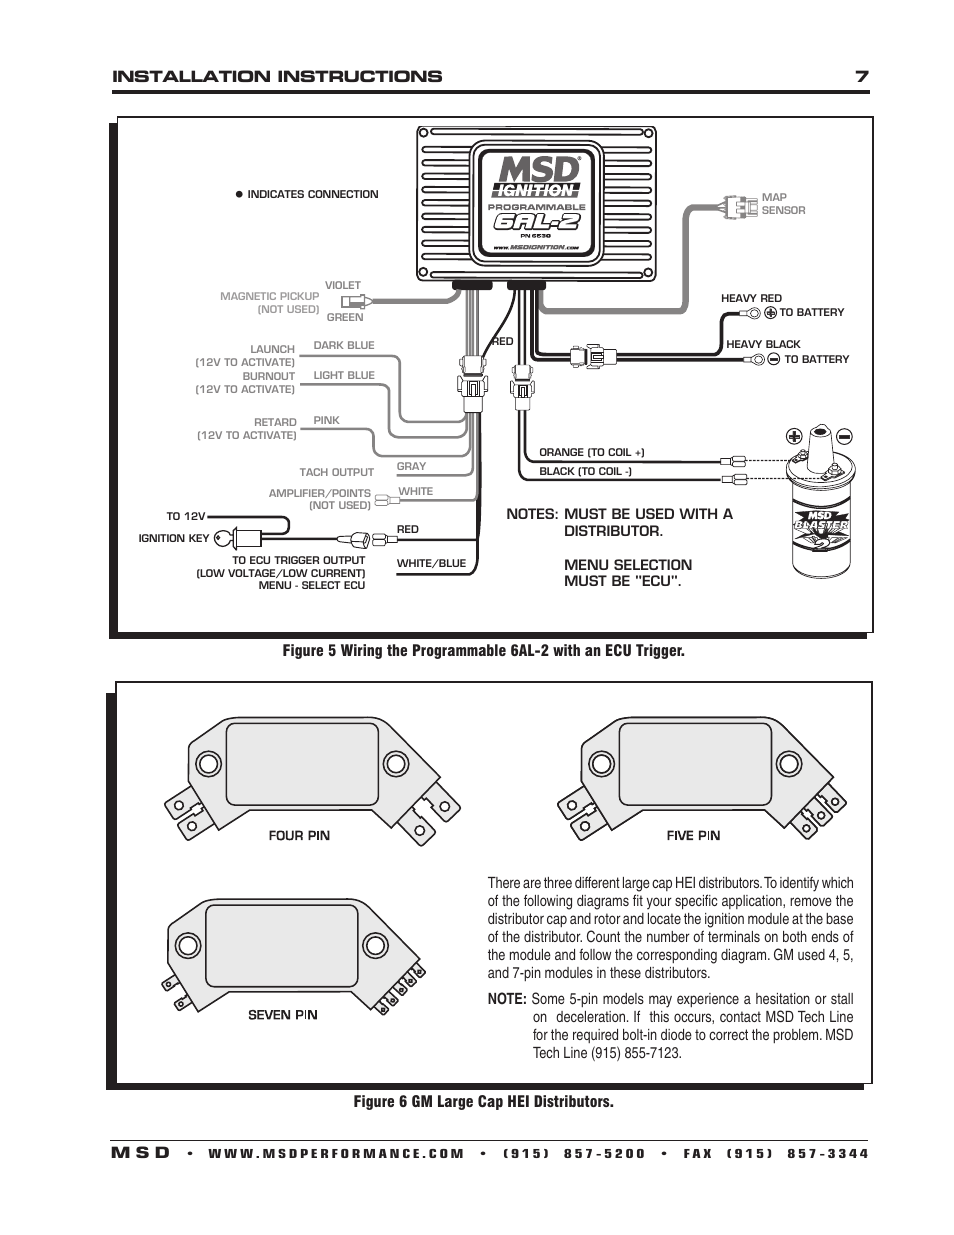 msd 6530 digital programmable 6al 2 installation page7?resize\\\\\\\=665%2C861 remarkable msd 6a wiring diagram chevy hei photos wiring msd hei wiring diagram at fashall.co